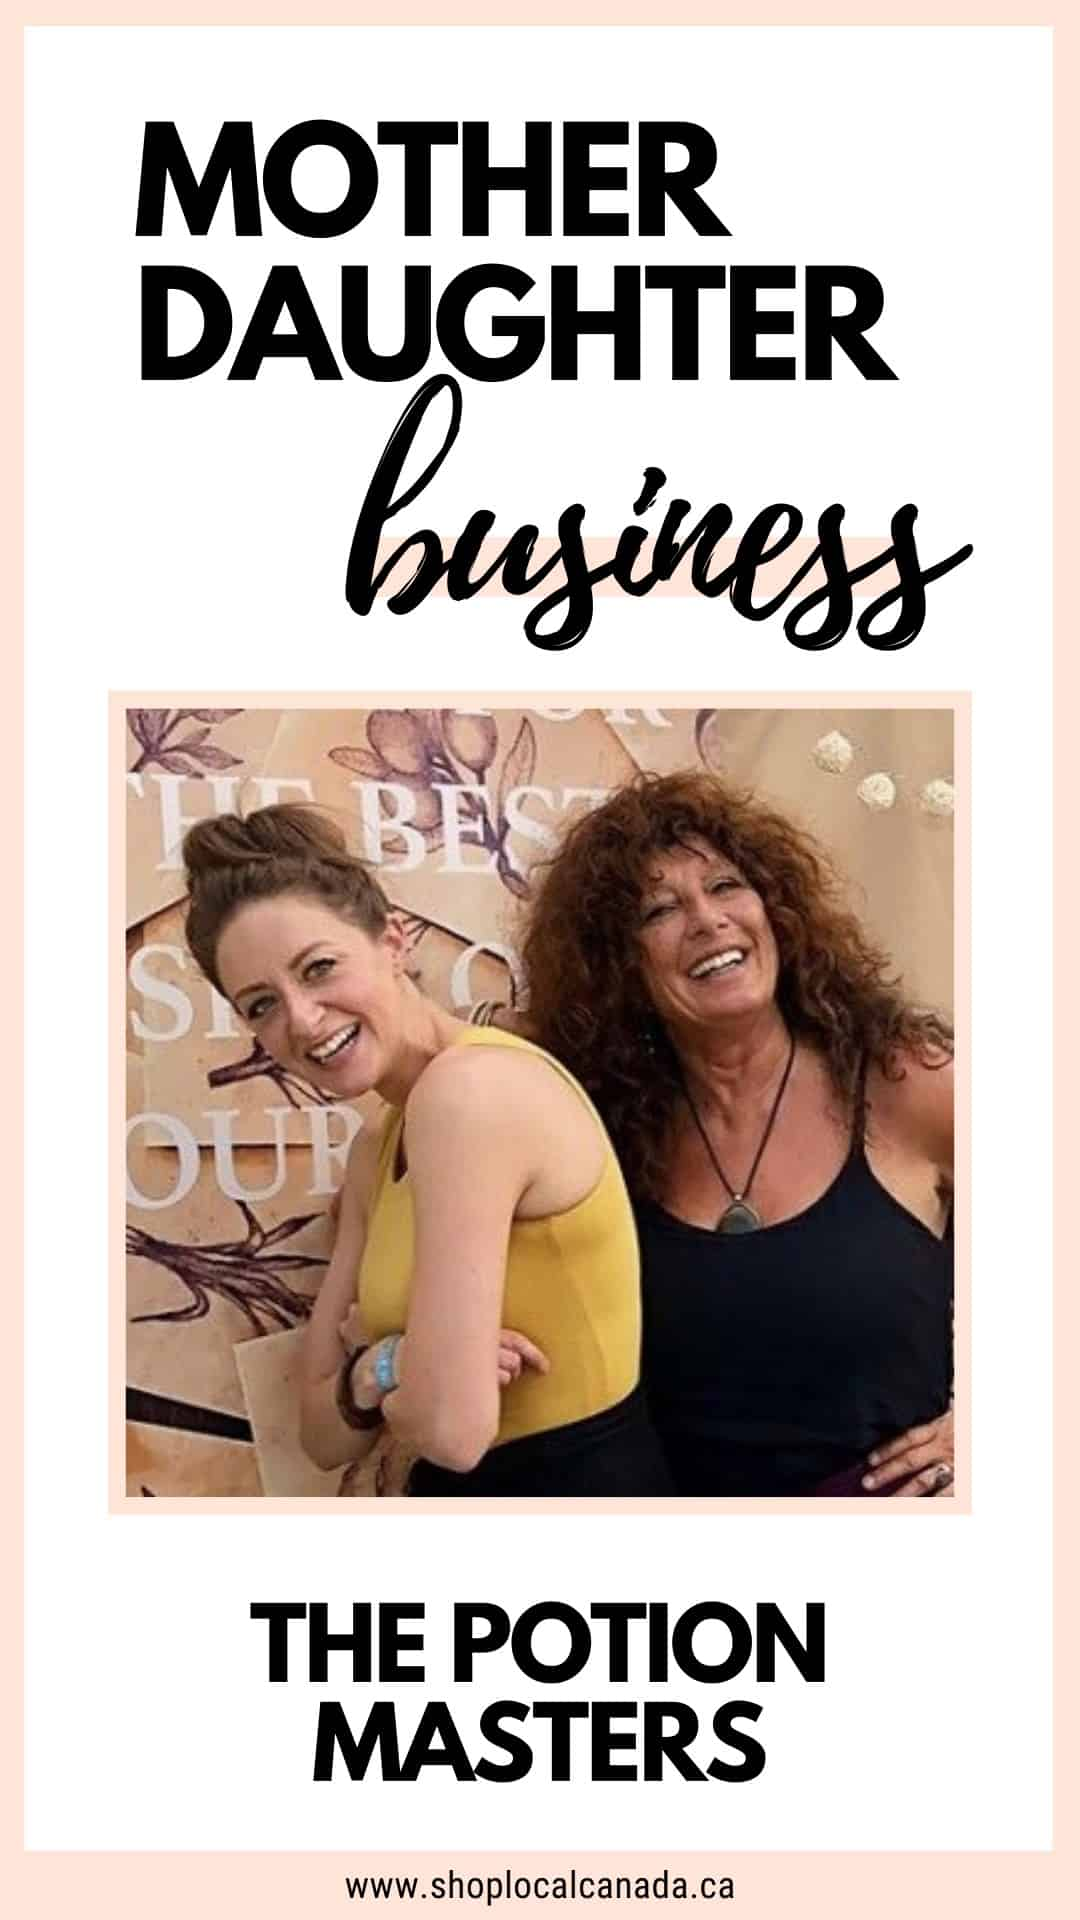 canadian-mother-daughter-business-the-potion-masters